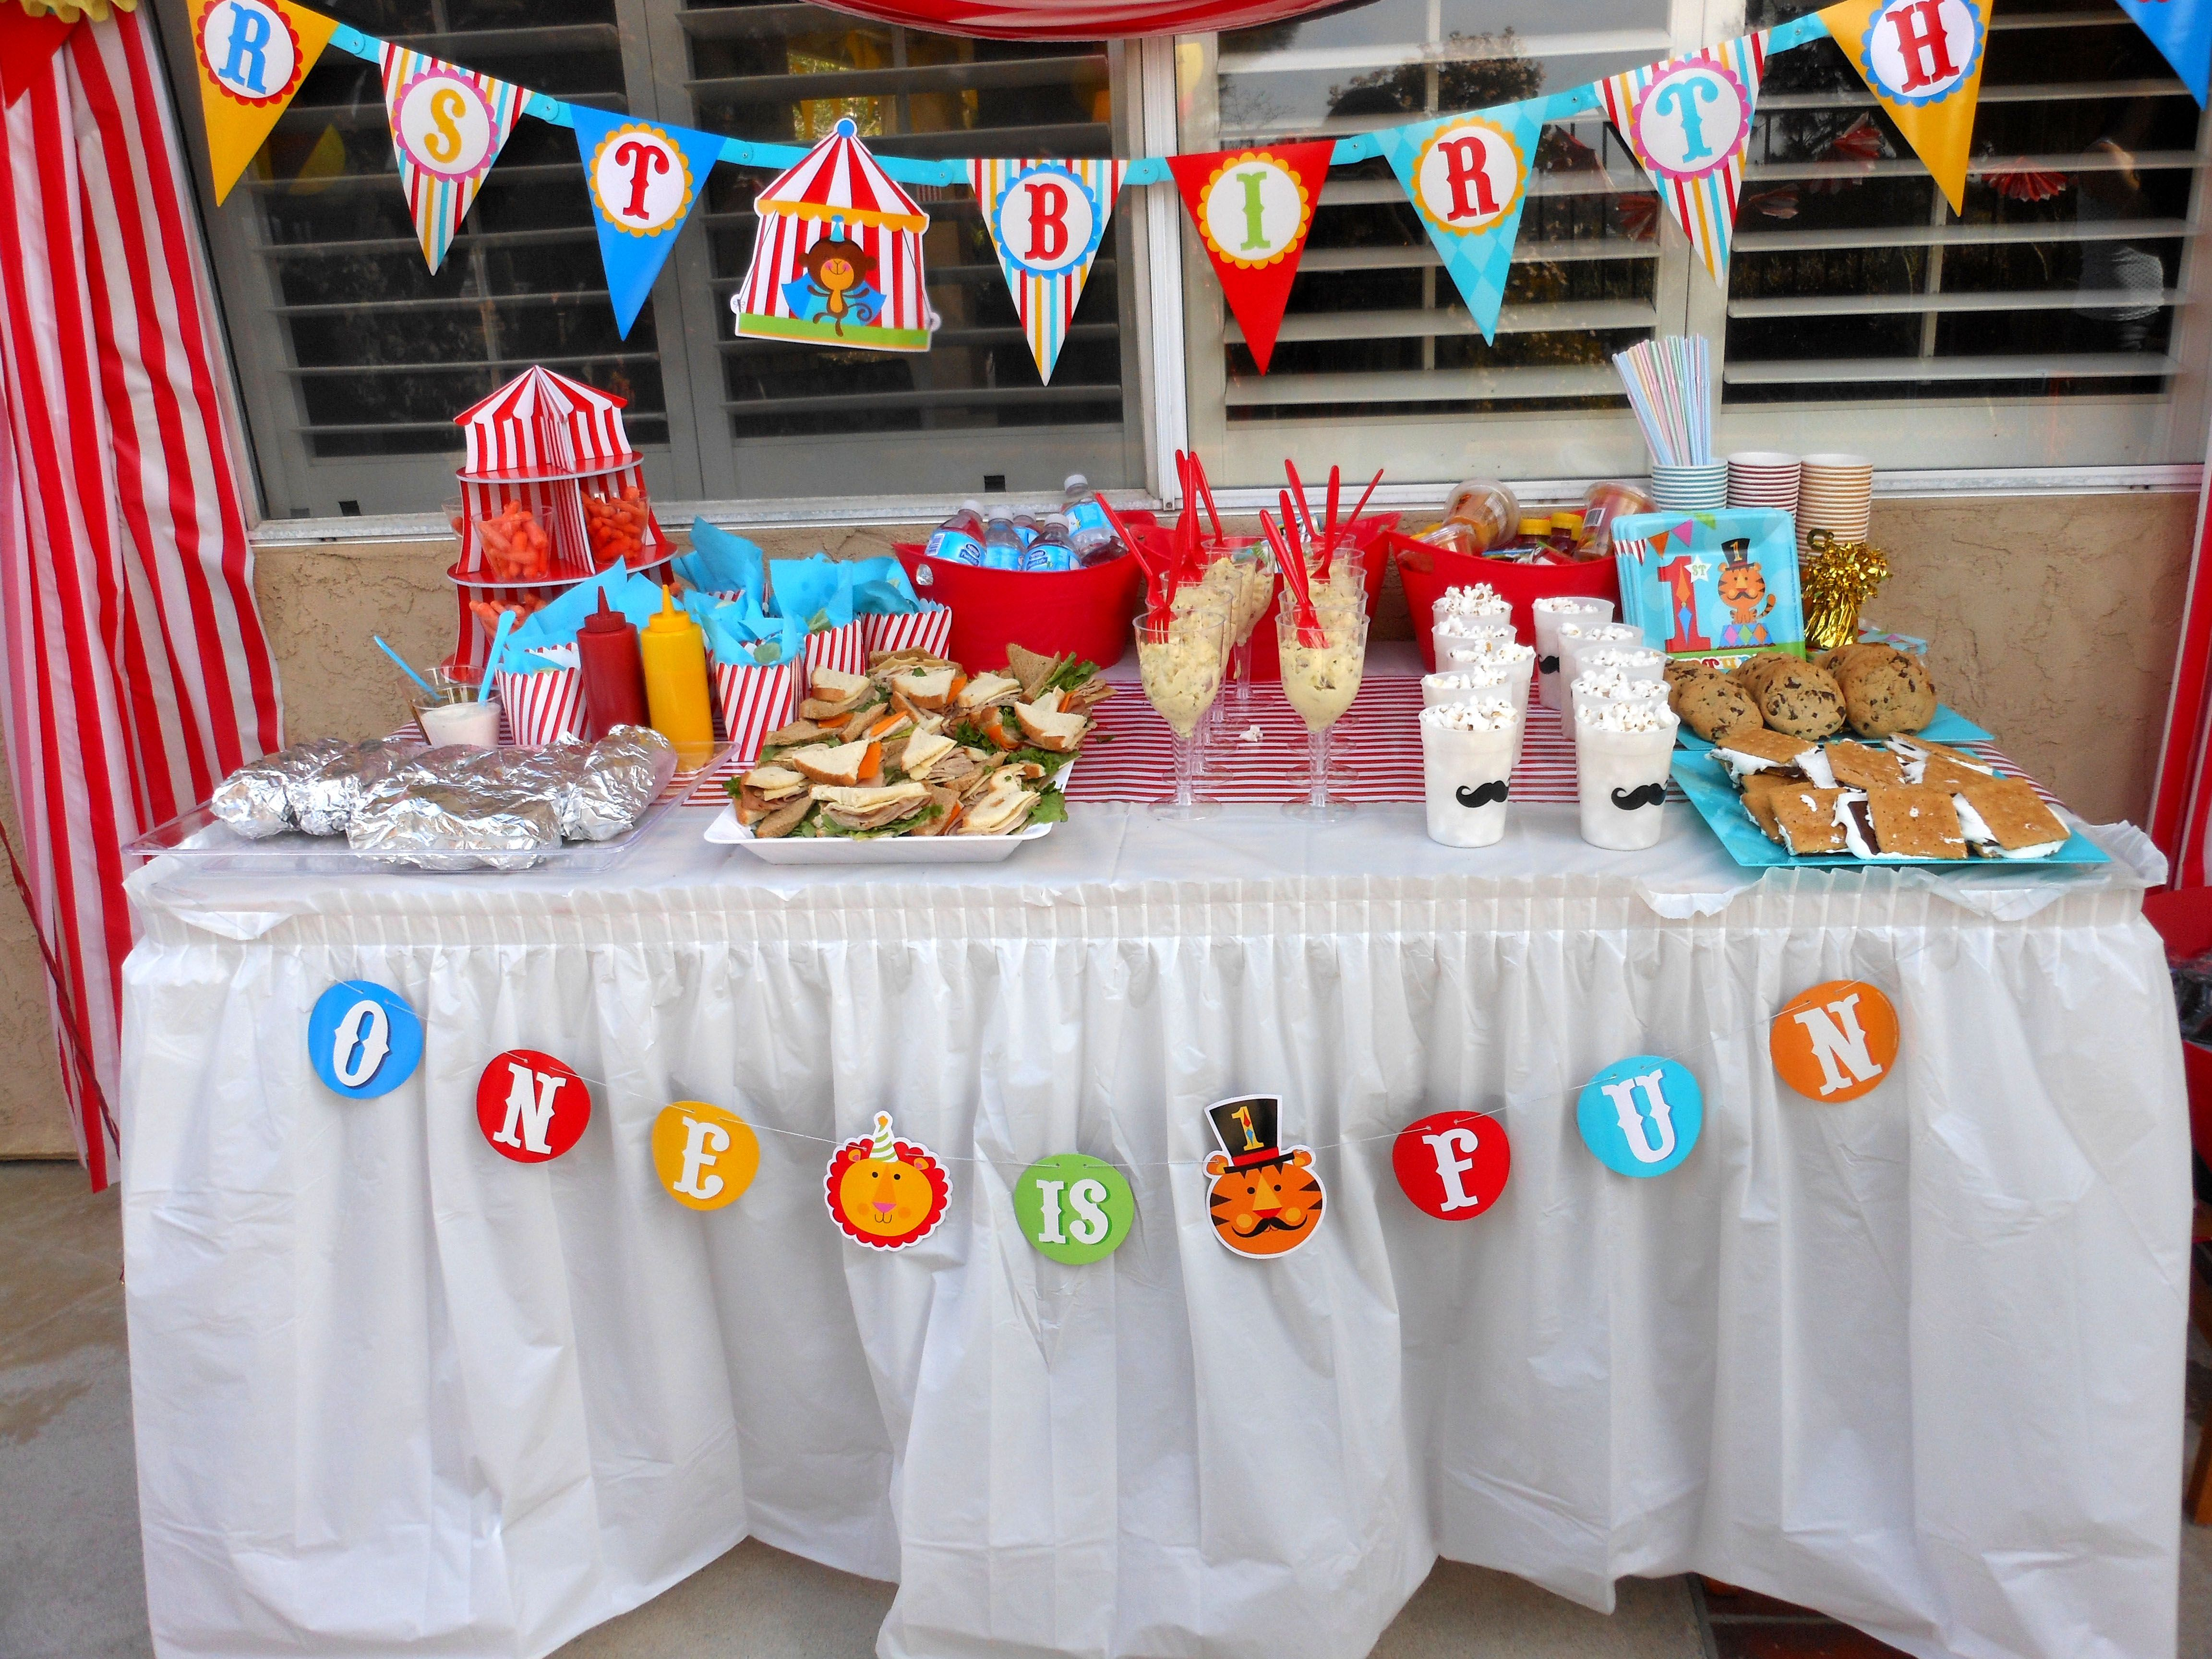 kids circus theme birthday party ideas for food table